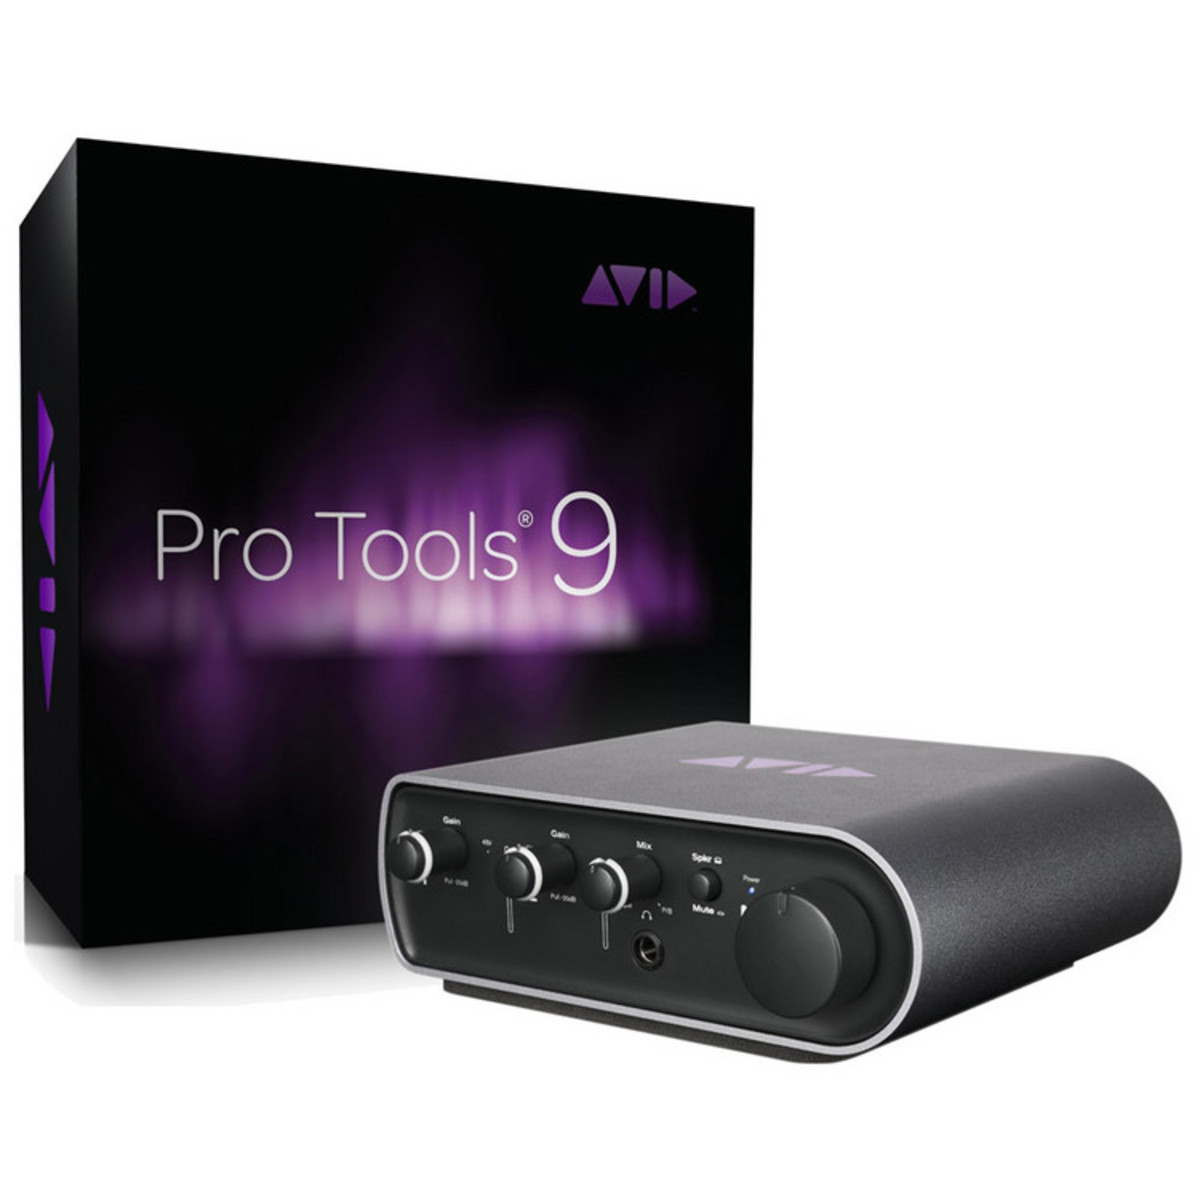 DISC Avid Pro Tools Mbox Mini with Pro Tools 9 (FREE upgrade to PT11)